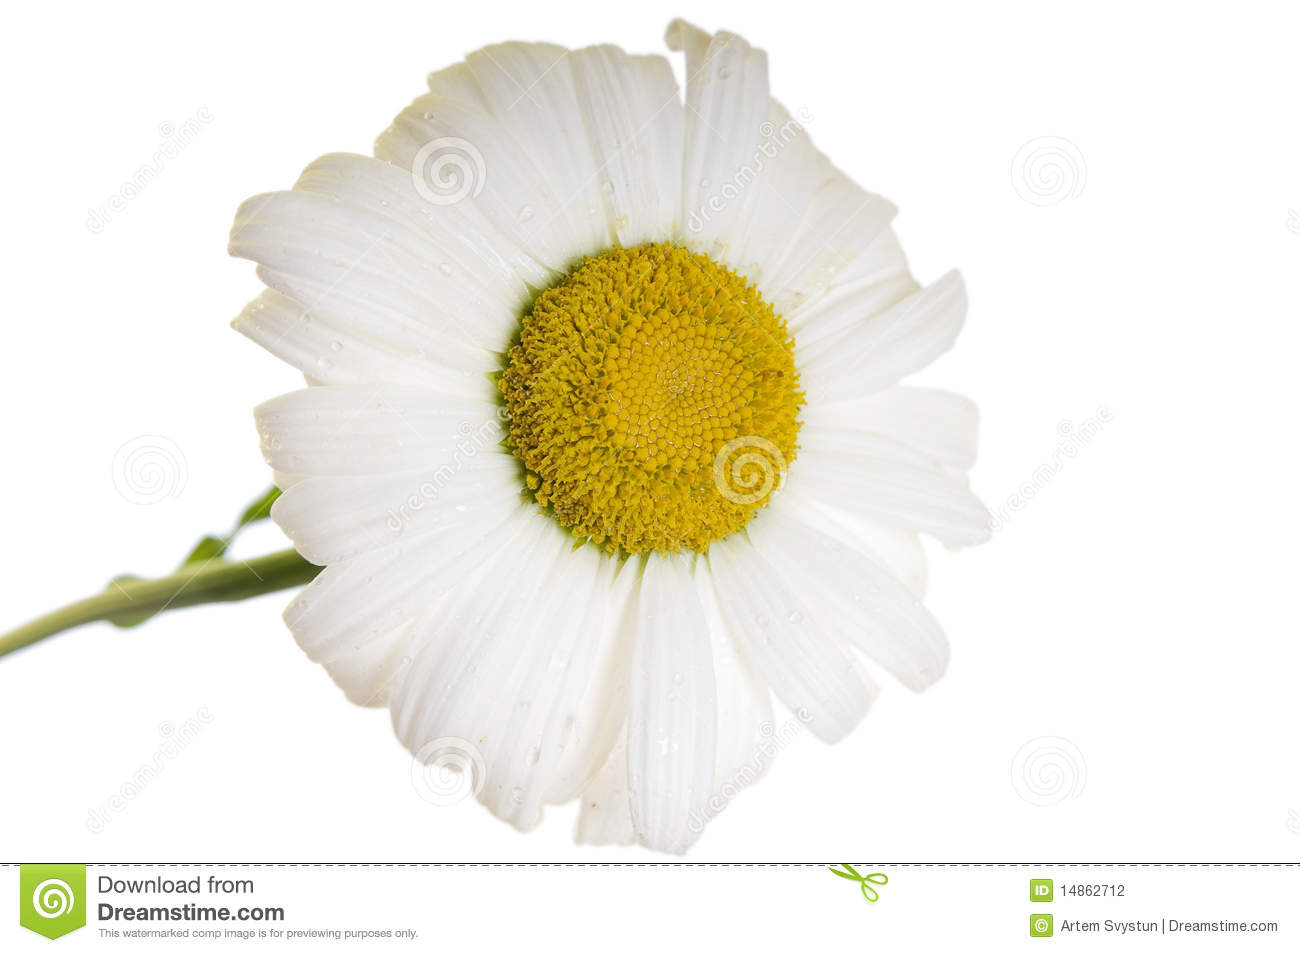 Camomile flower isolated